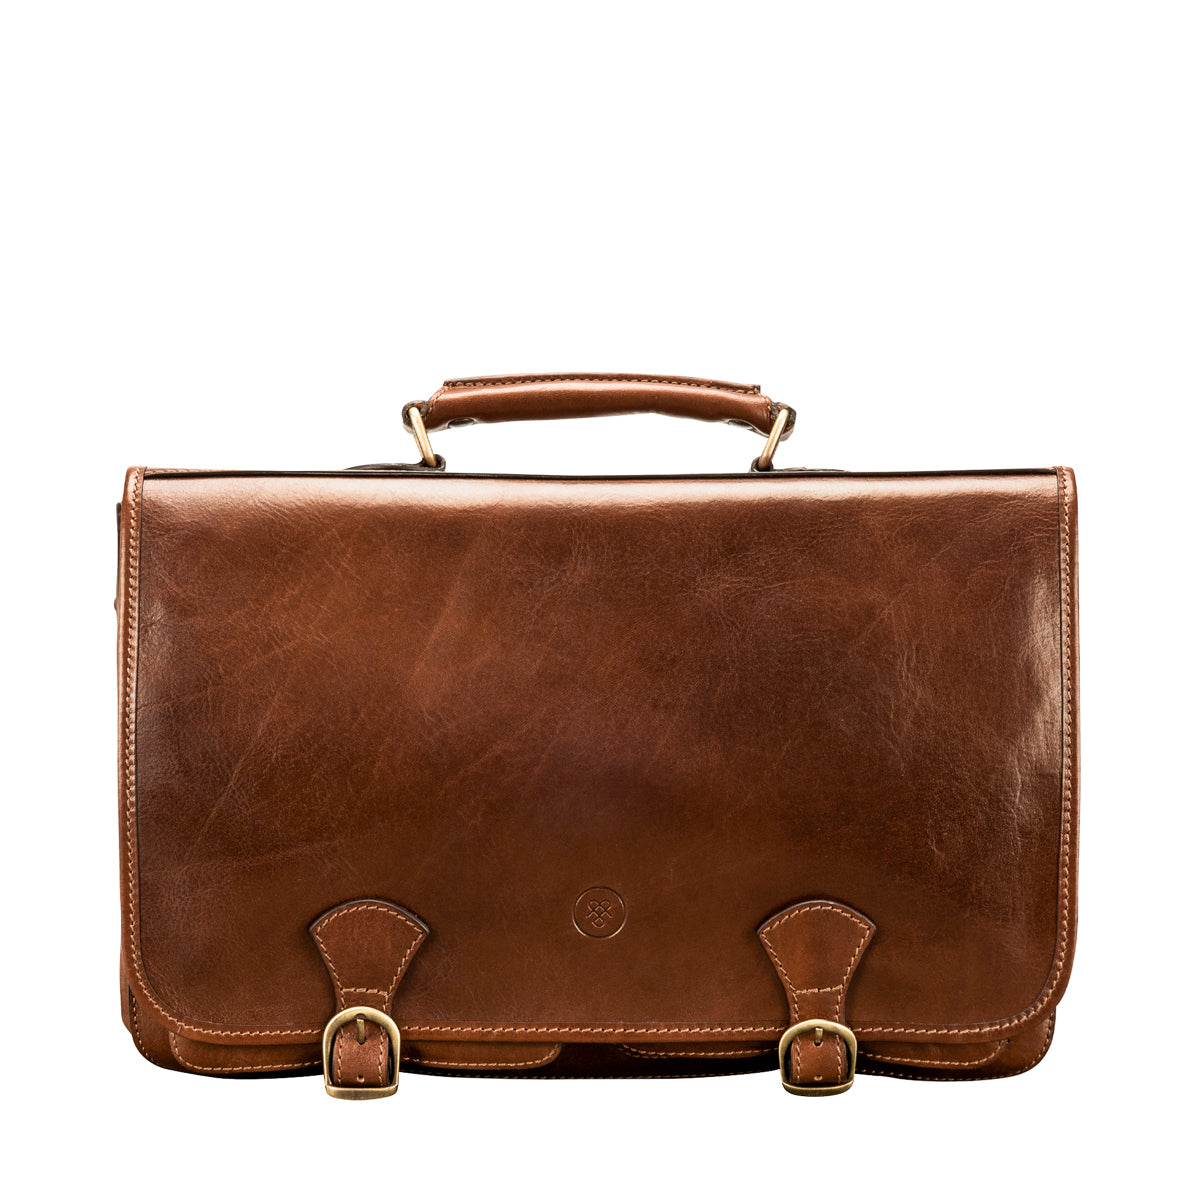 Image 1 of the 'Jesolo Due' Chestnut Veg-Tanned Leather Satchel